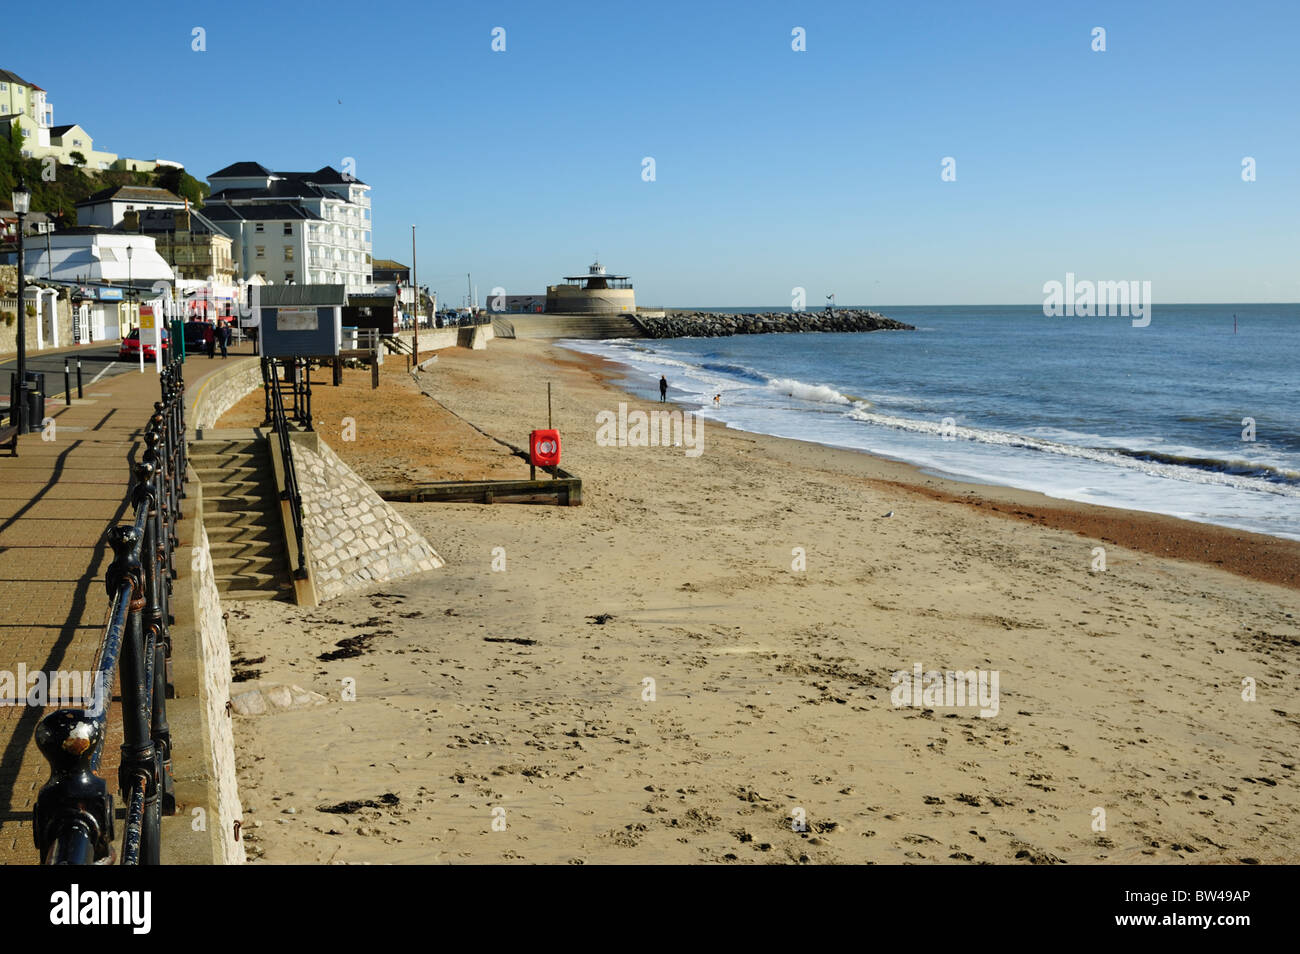 Isle of wight deserted stock photos isle of wight - Medina swimming pool isle of wight ...